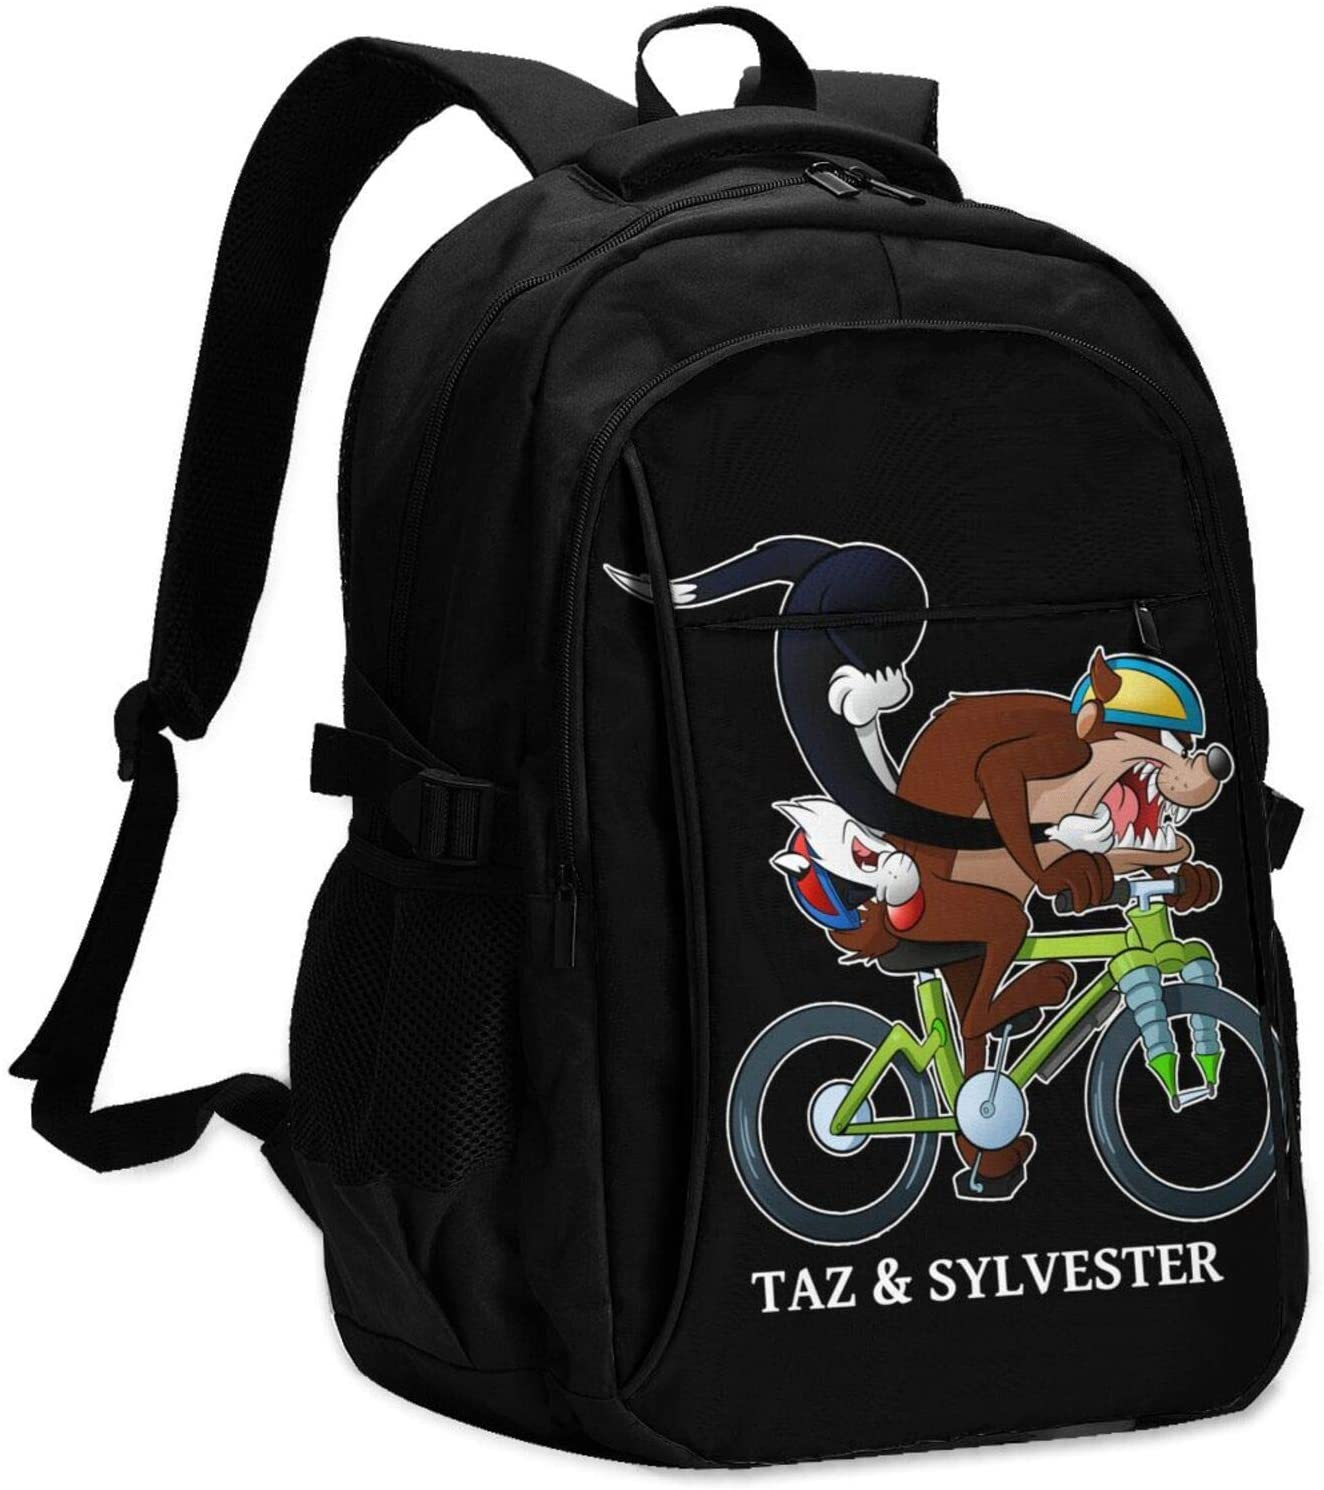 Lingassassin Taz N Sylvester Looney Tunes Unisex Casual and Durable Large-Capacity Laptop Bag with USB Charging Port, Black Shoulders Suitable for Hiking